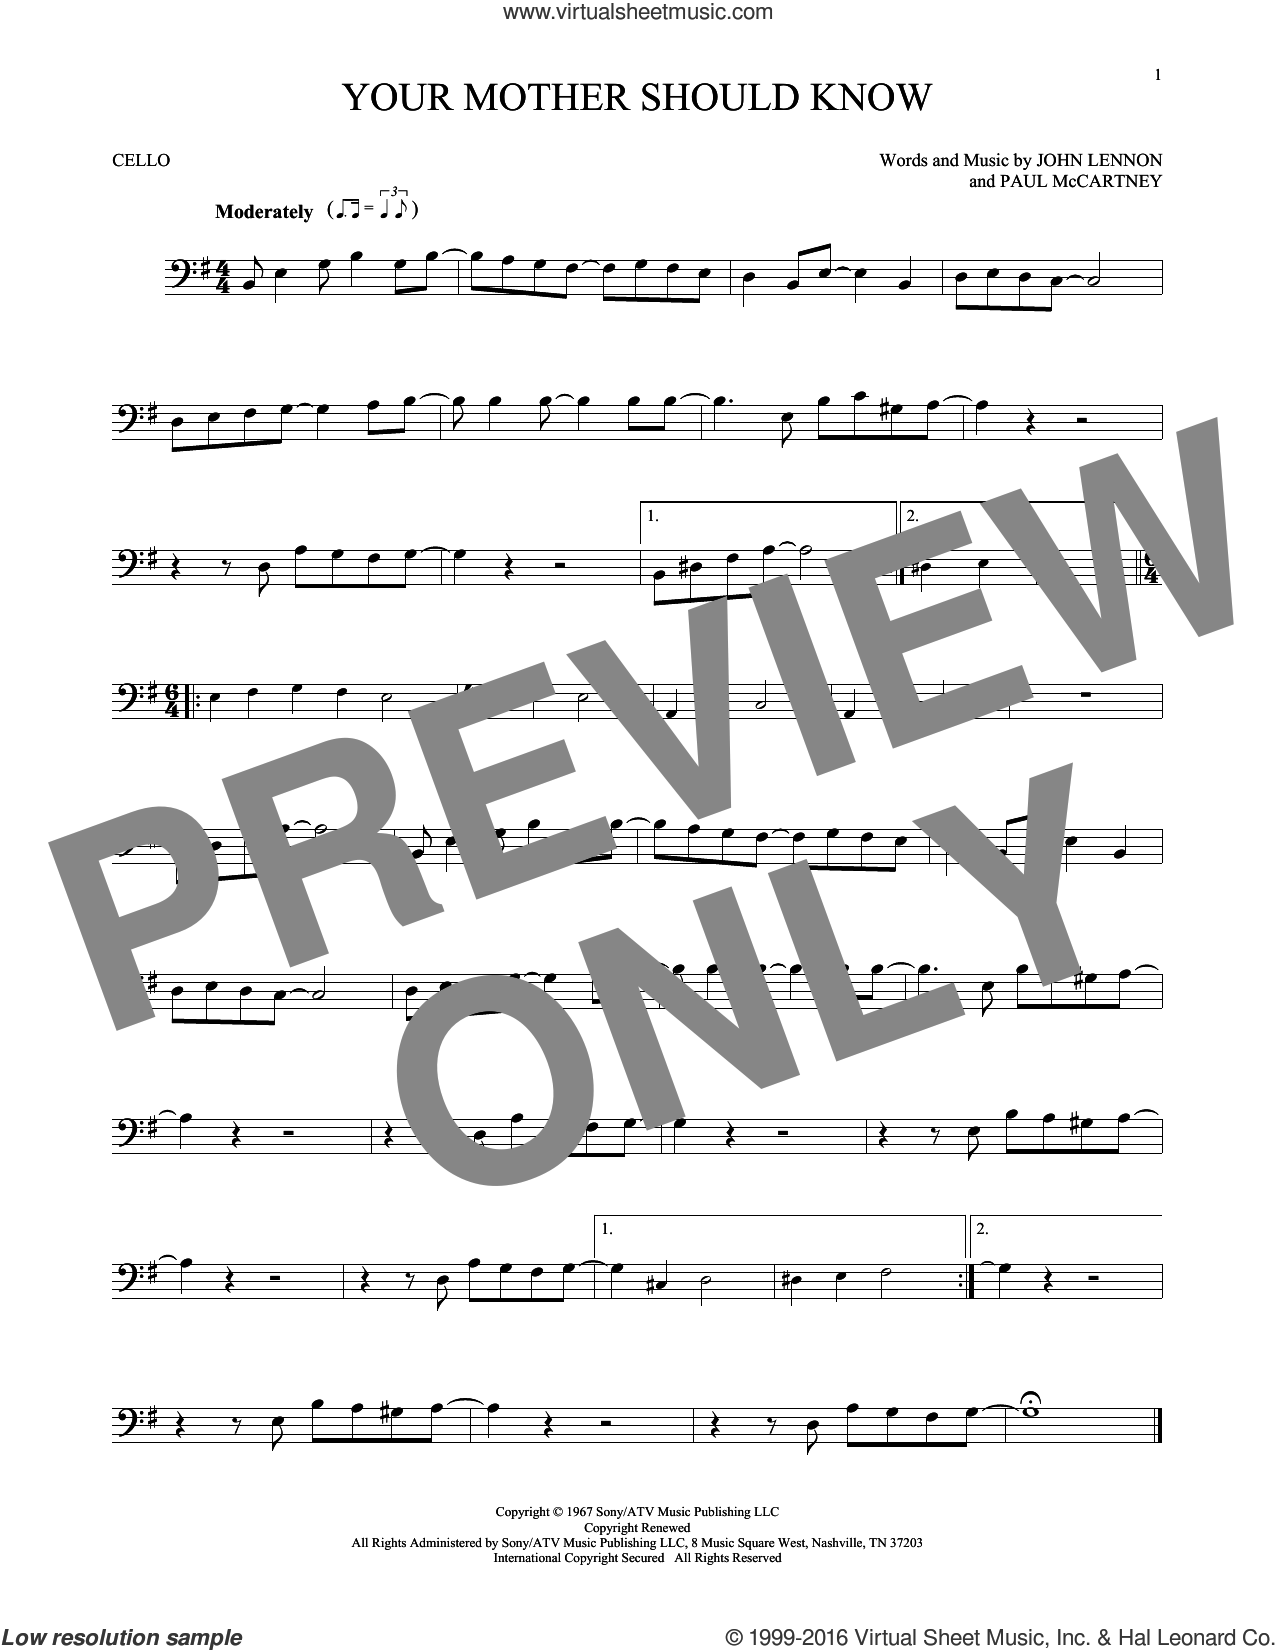 Your Mother Should Know sheet music for cello solo by Paul McCartney, The Beatles and John Lennon. Score Image Preview.